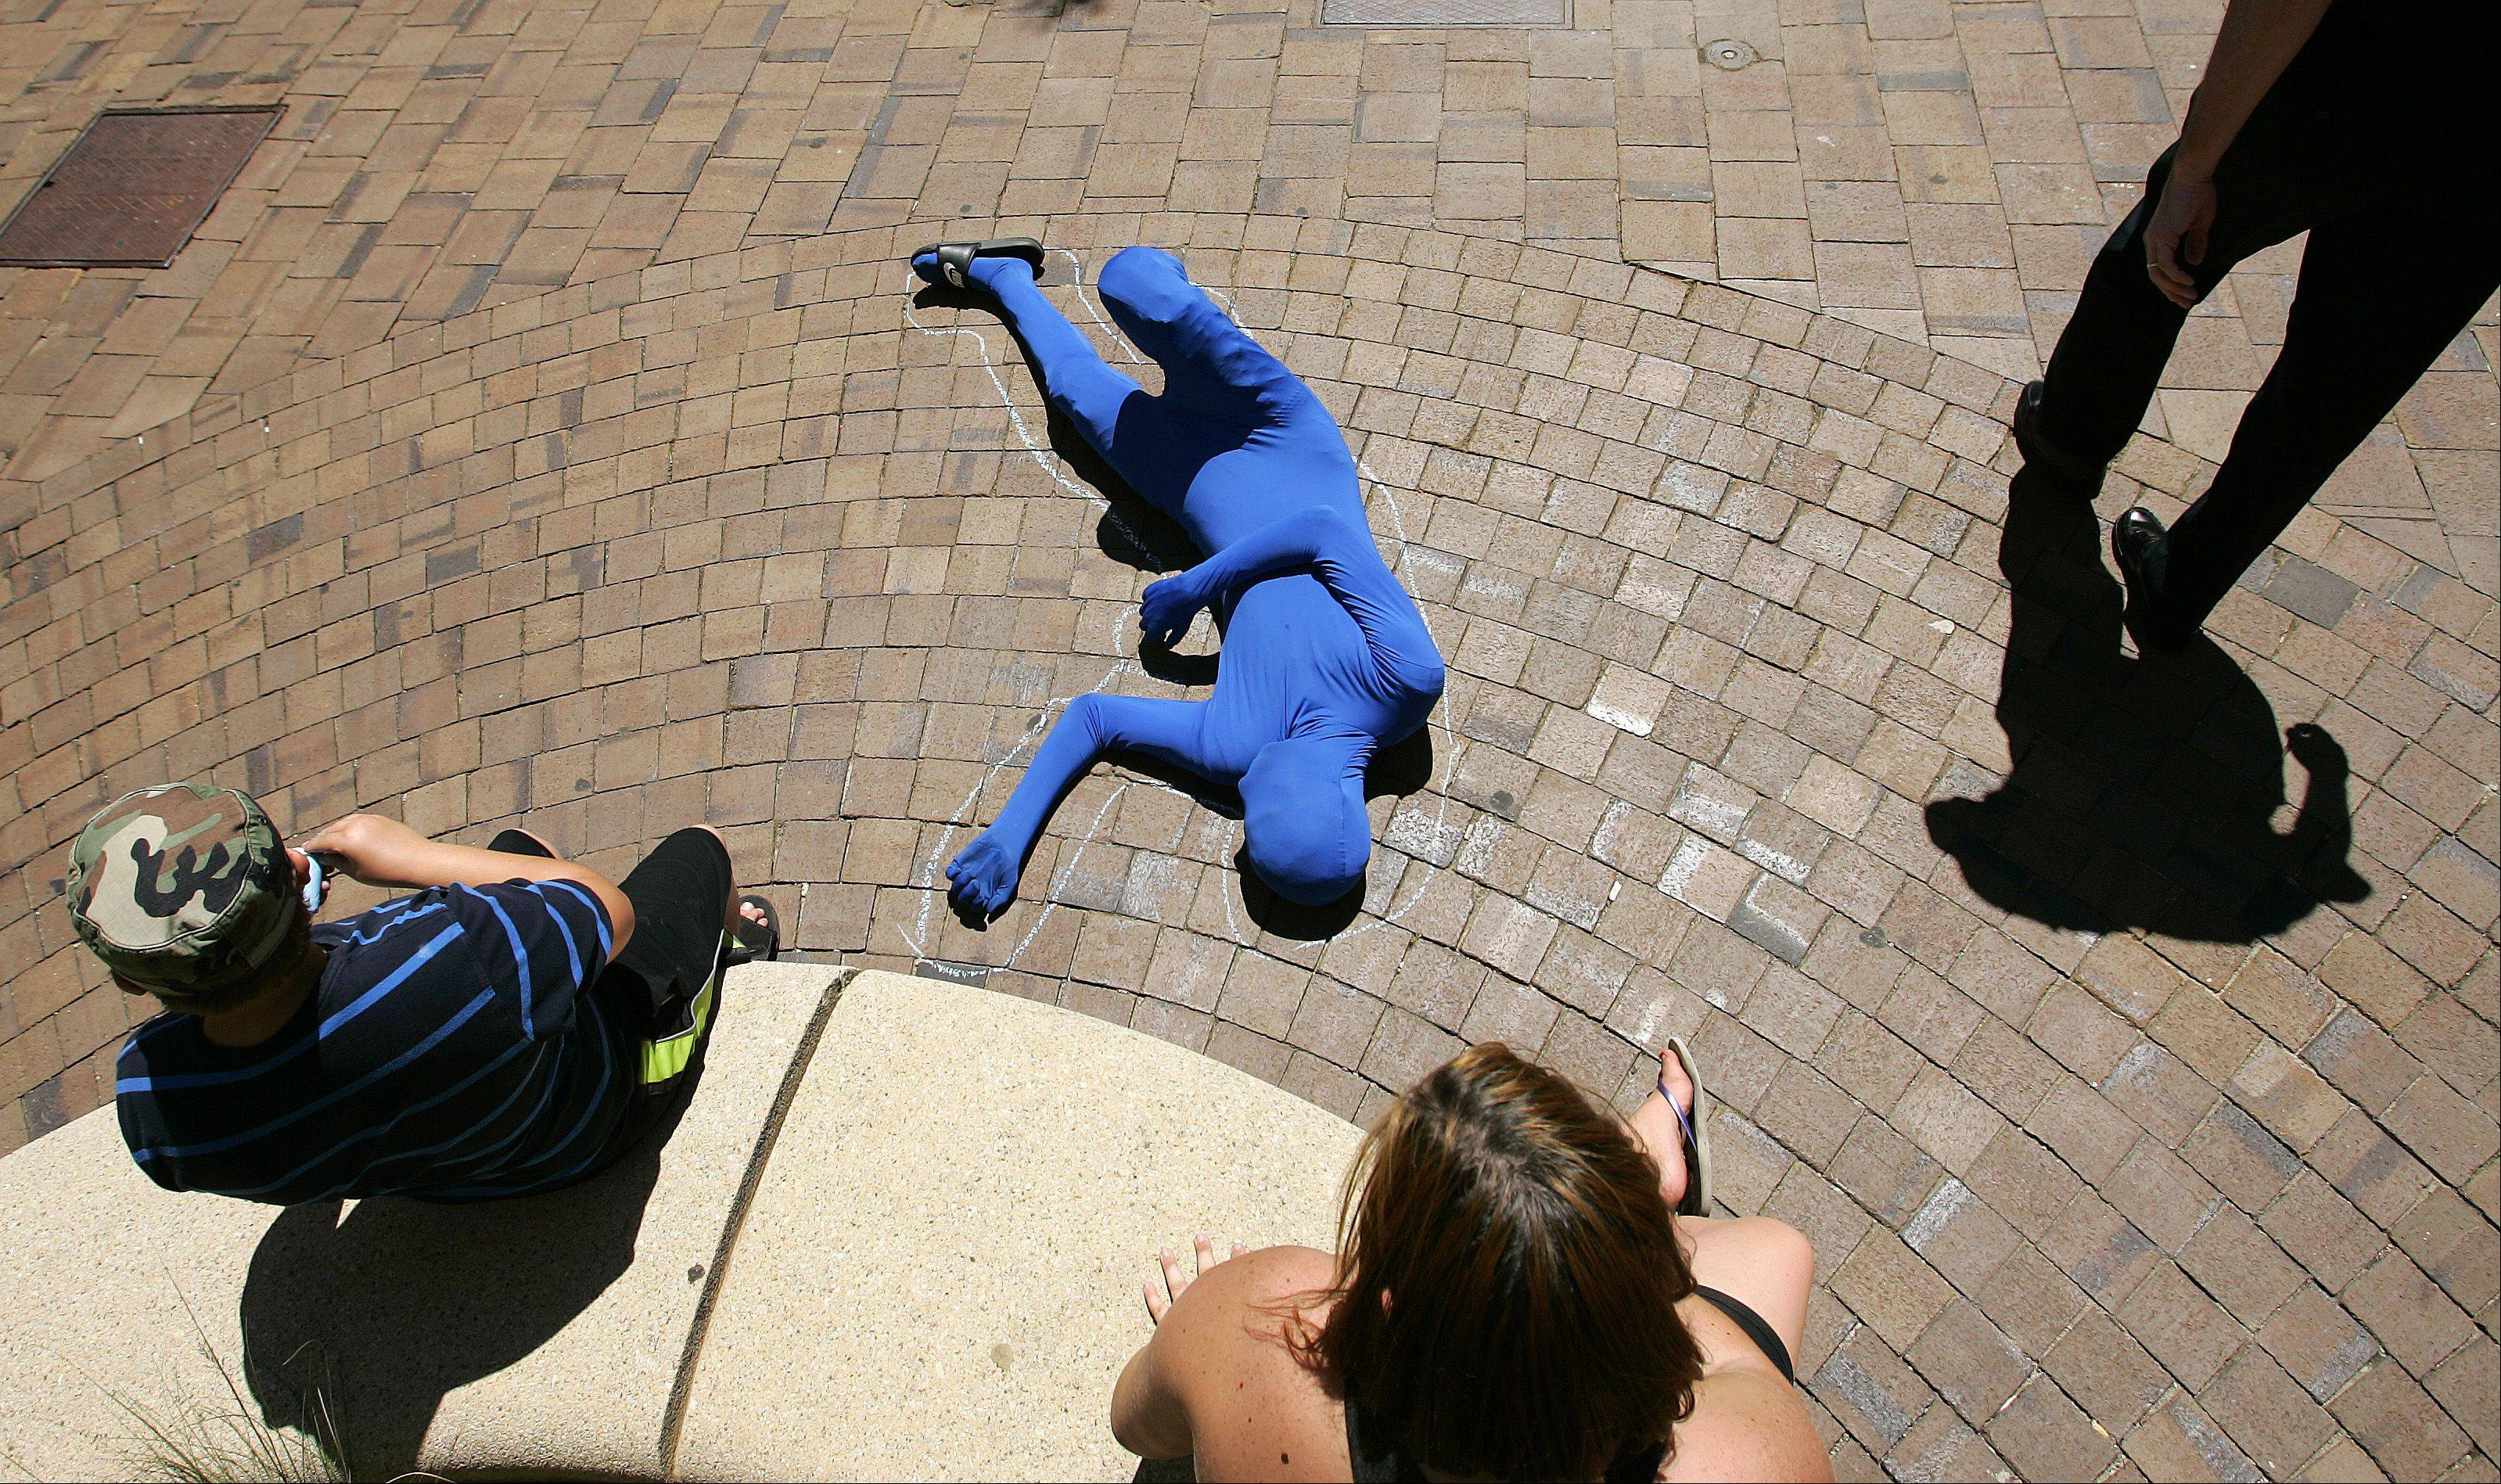 While wearing his blue suit Saturday during Art & Soul on the Fox in Elgin, 15-year-old Mason Keys has some fun with people as they pass by.